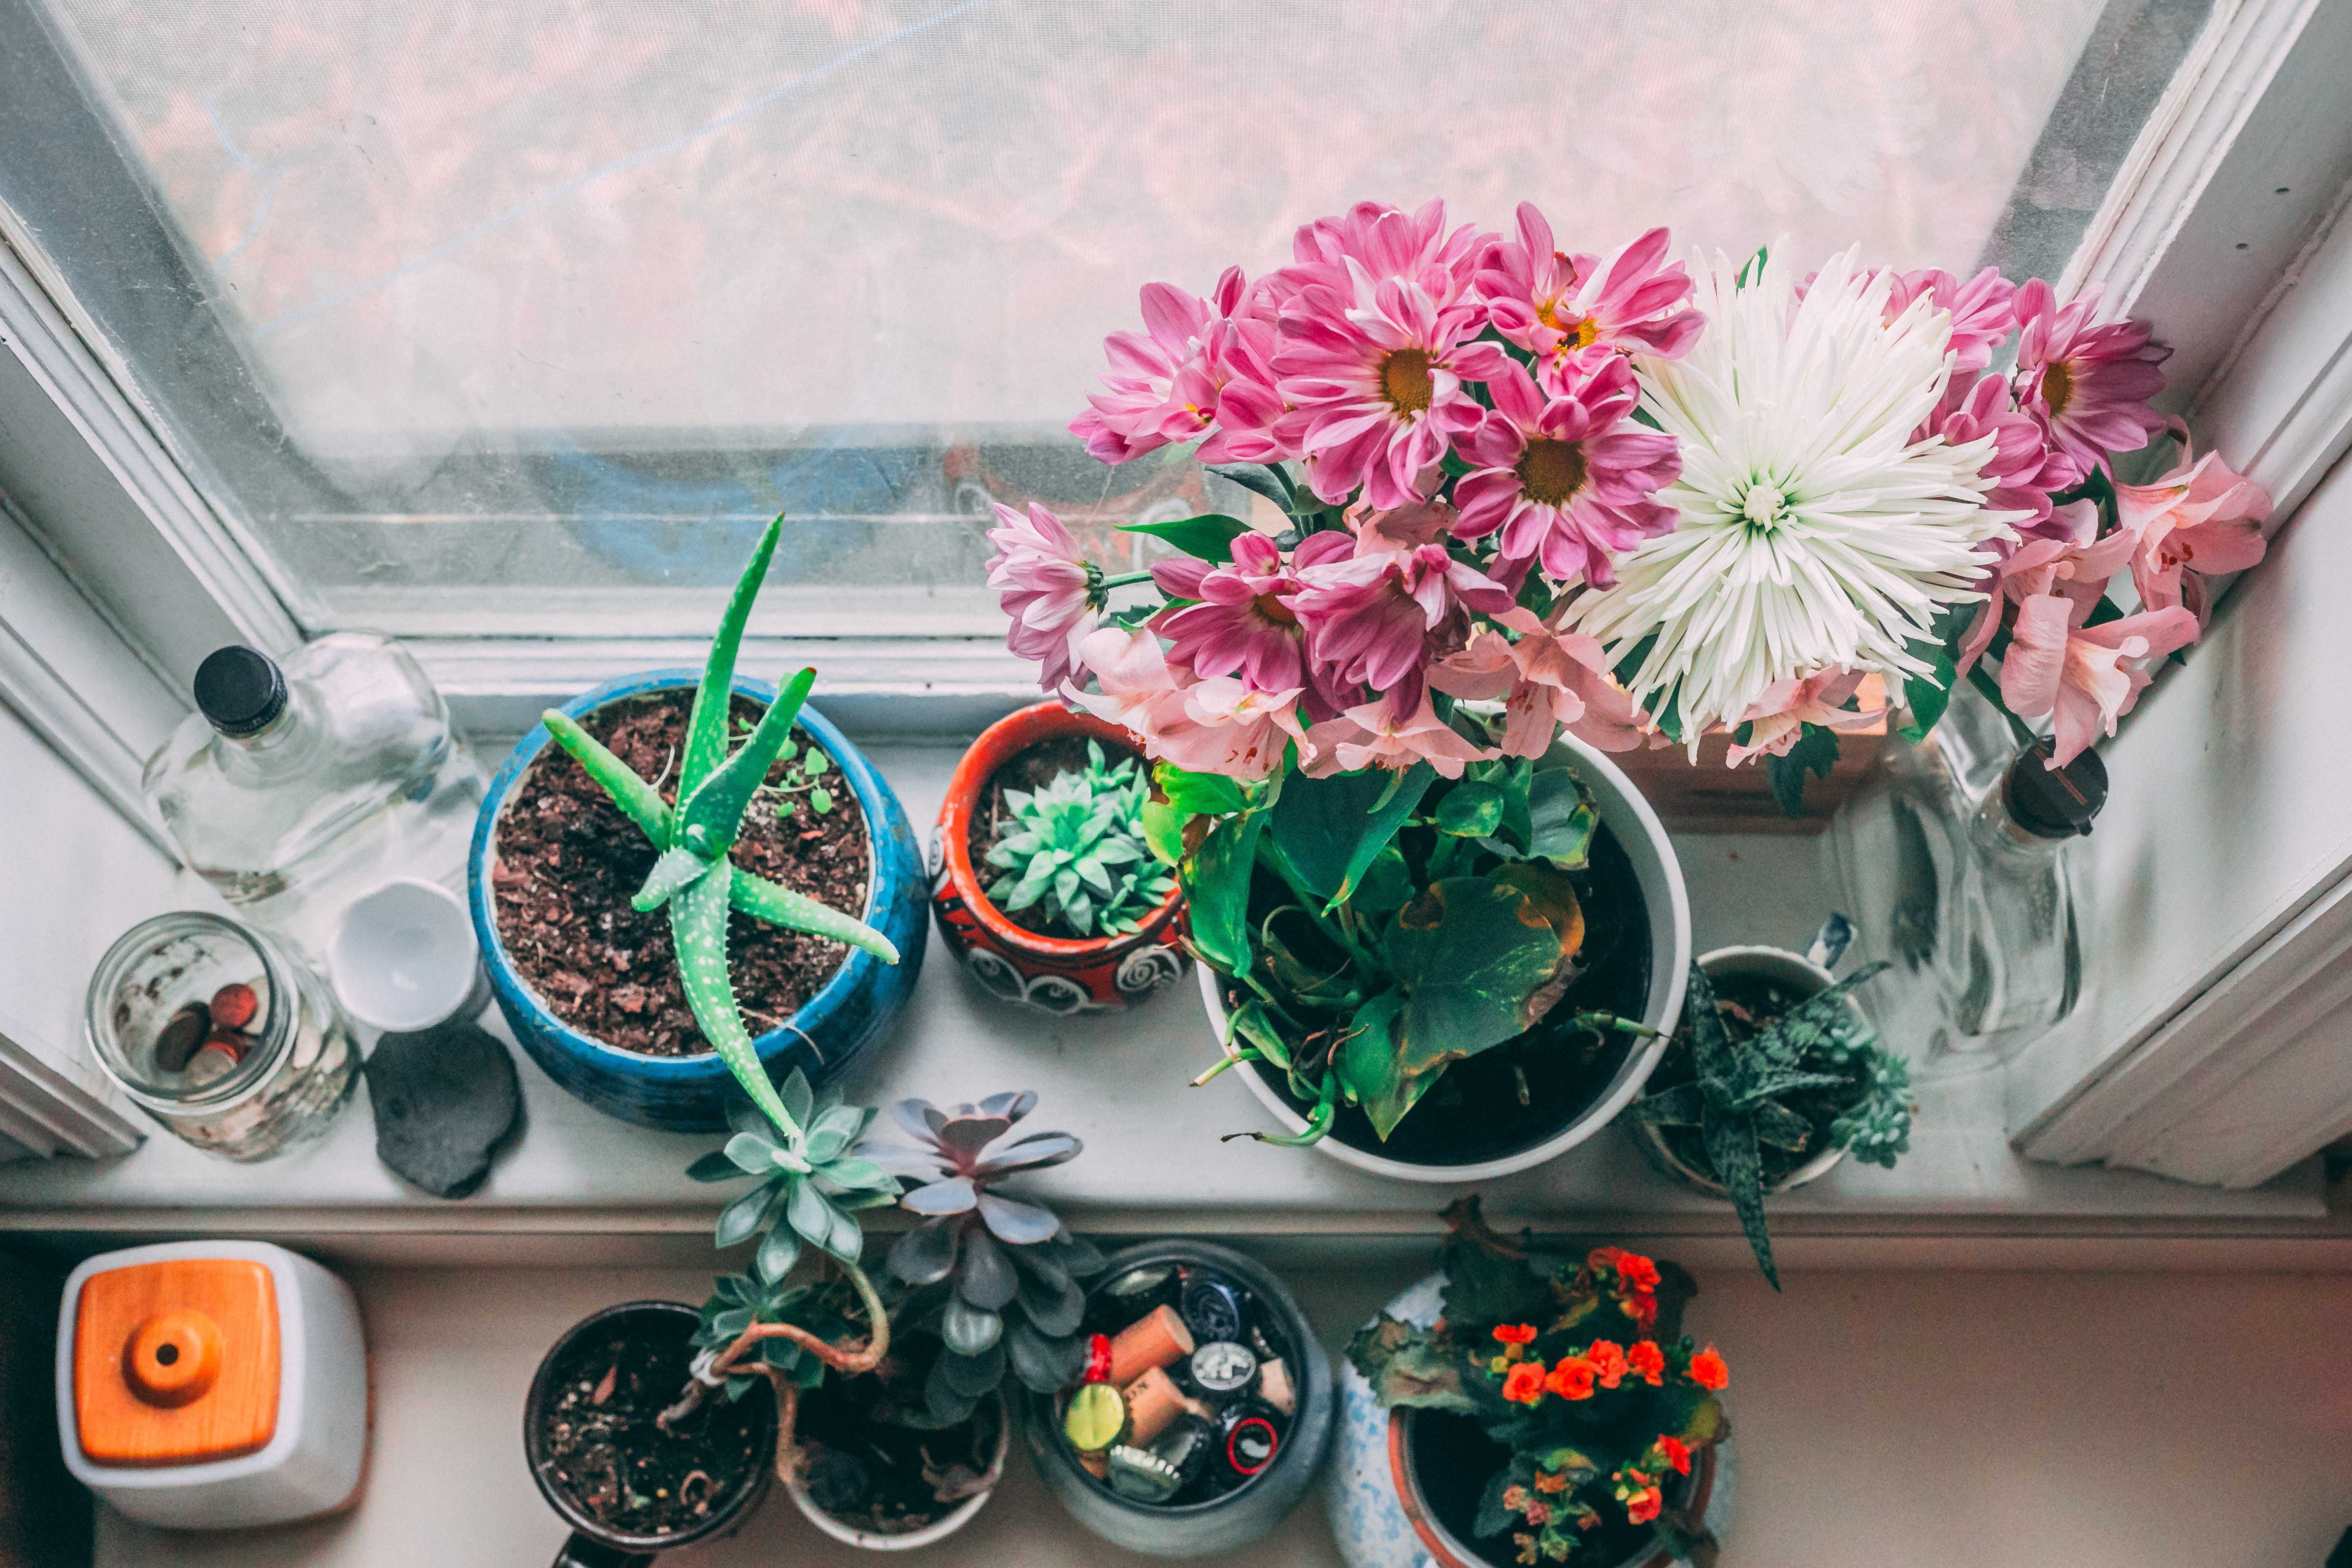 arrangement of house plants including flowers and cacti